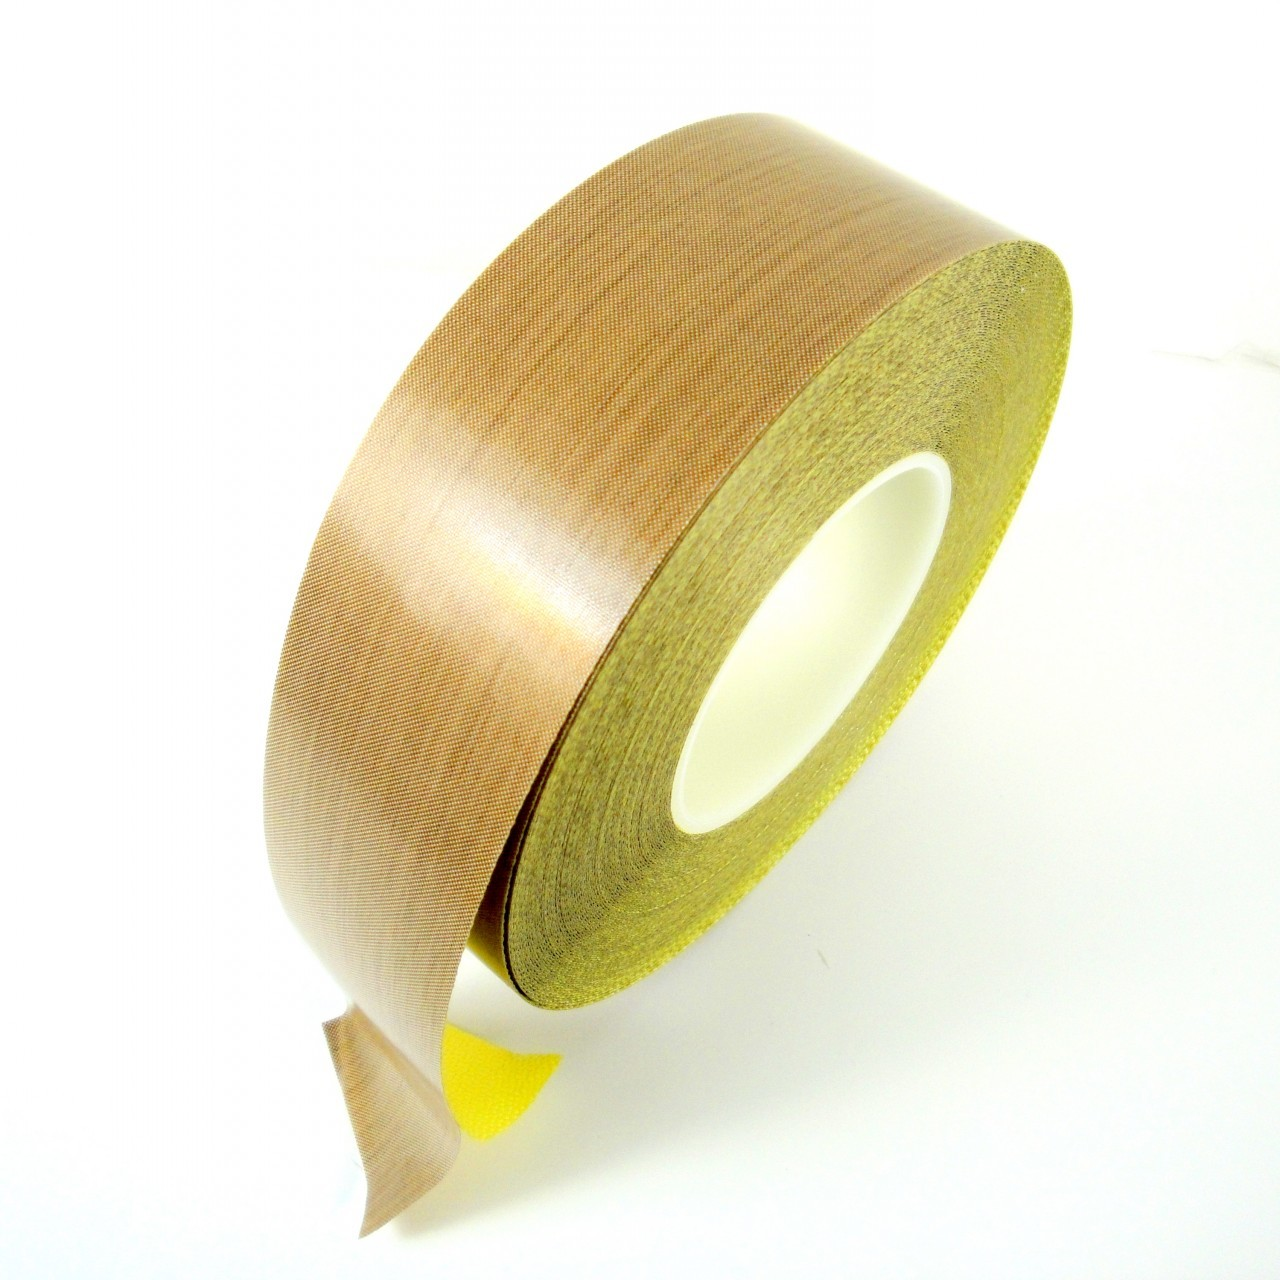 PTFE Coated glass tape